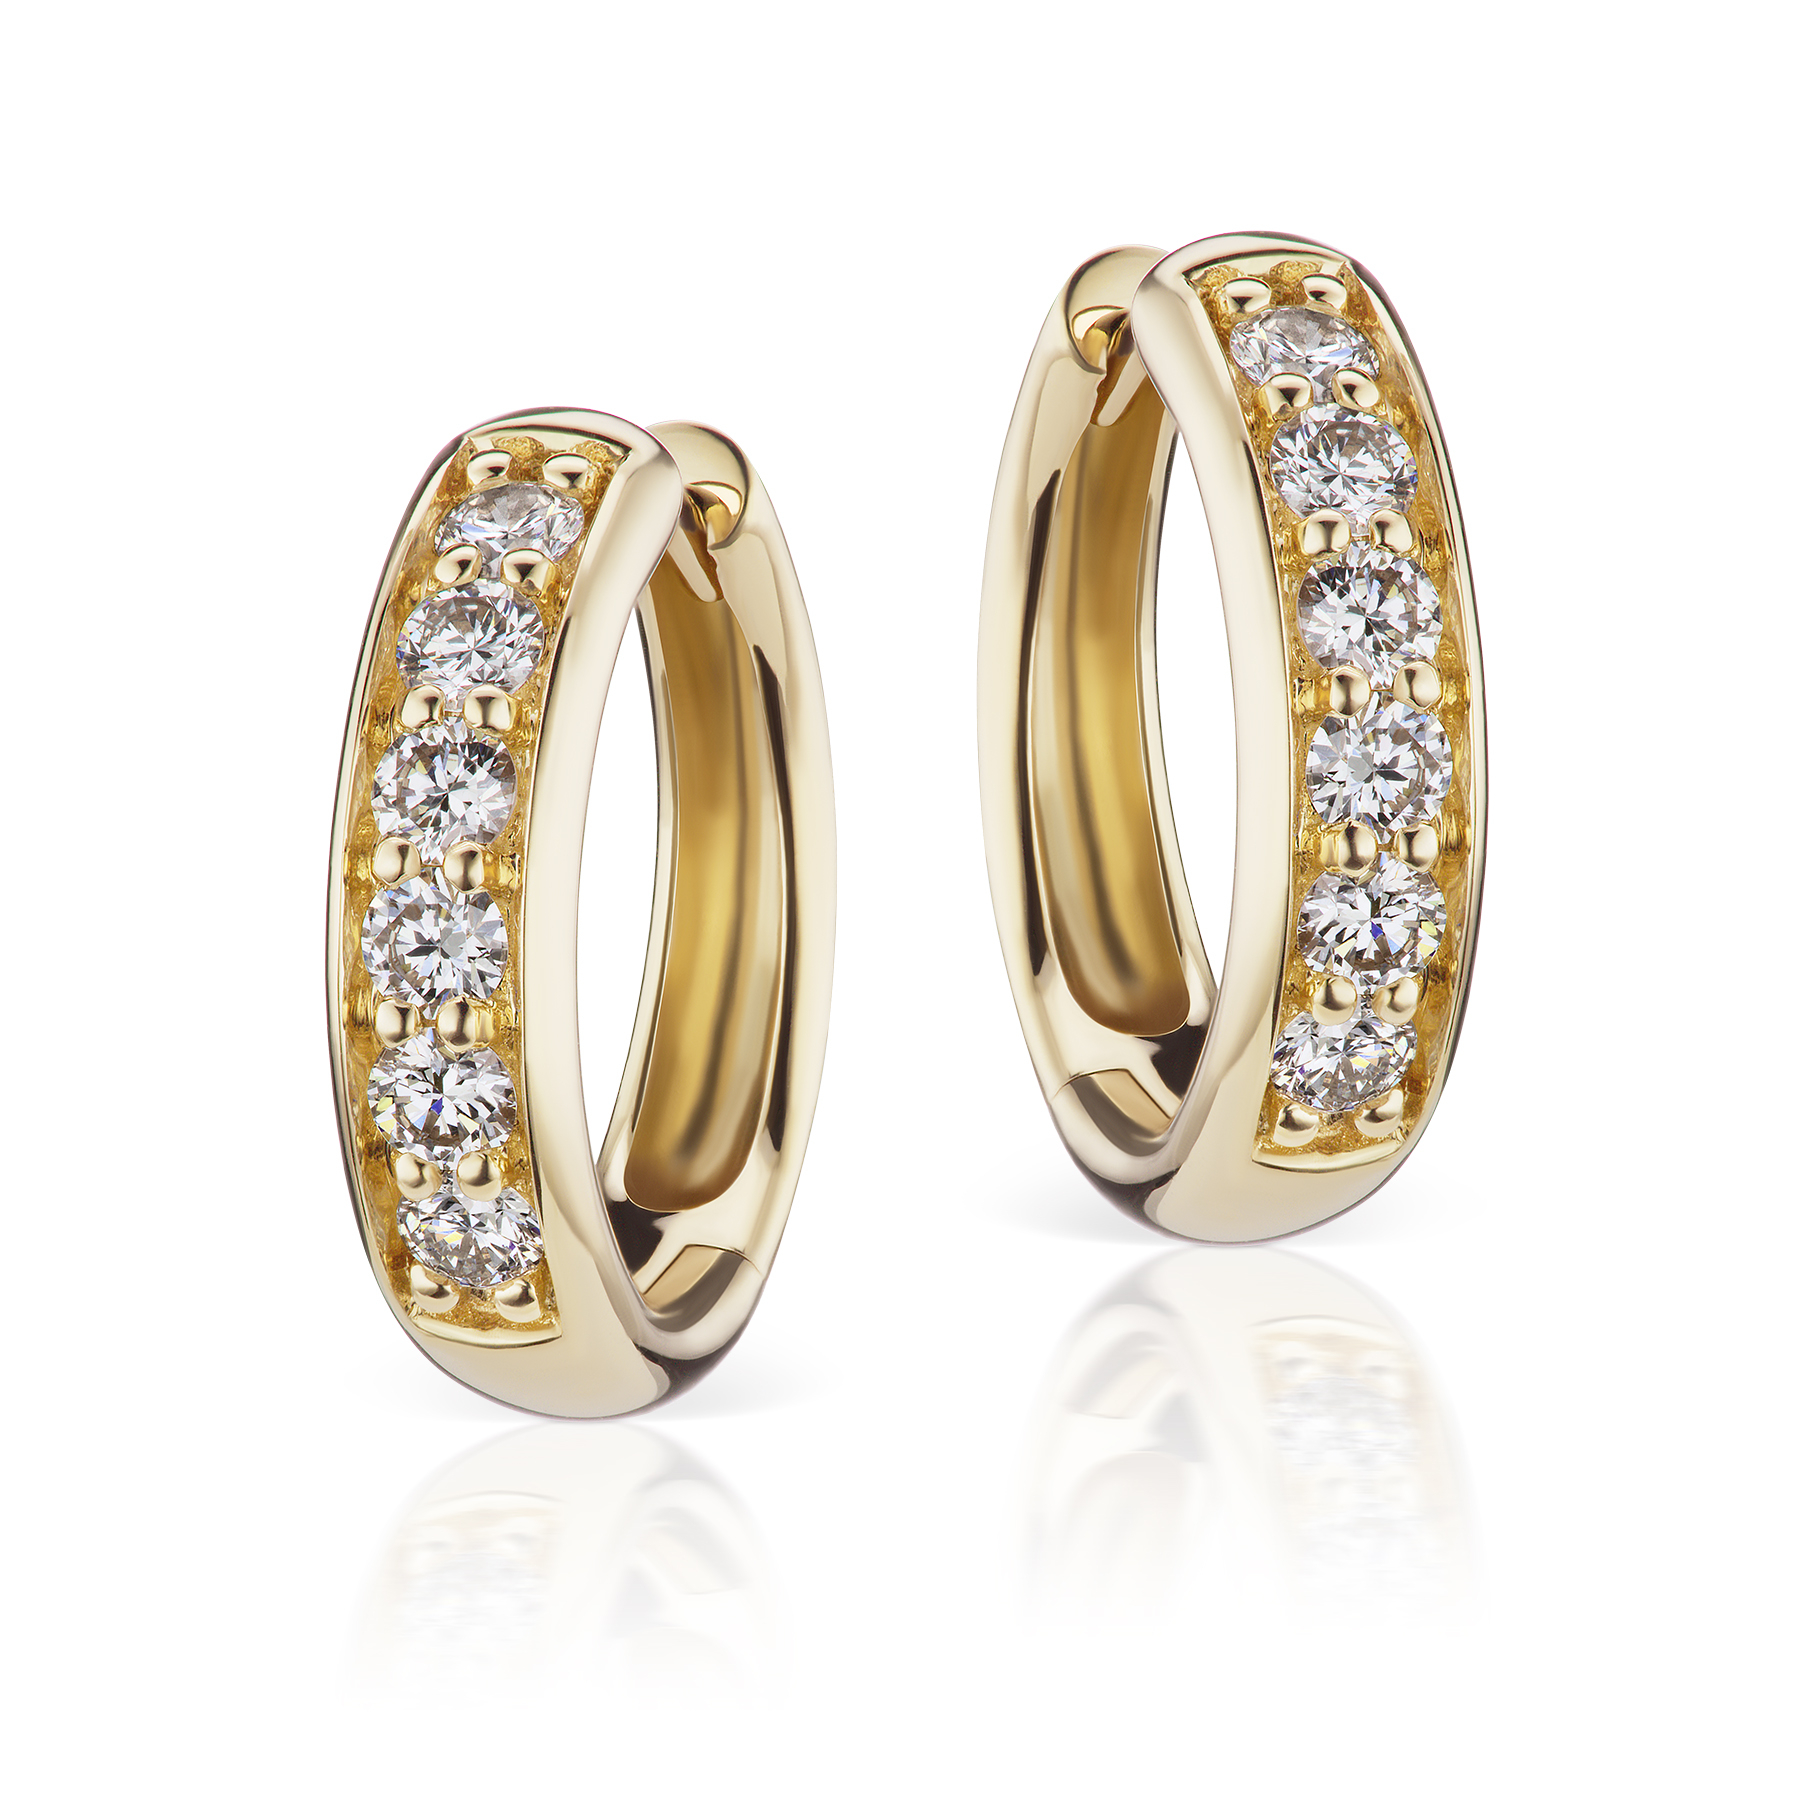 Jane Taylor Yellow Gold & Diamond Huggie Earrings